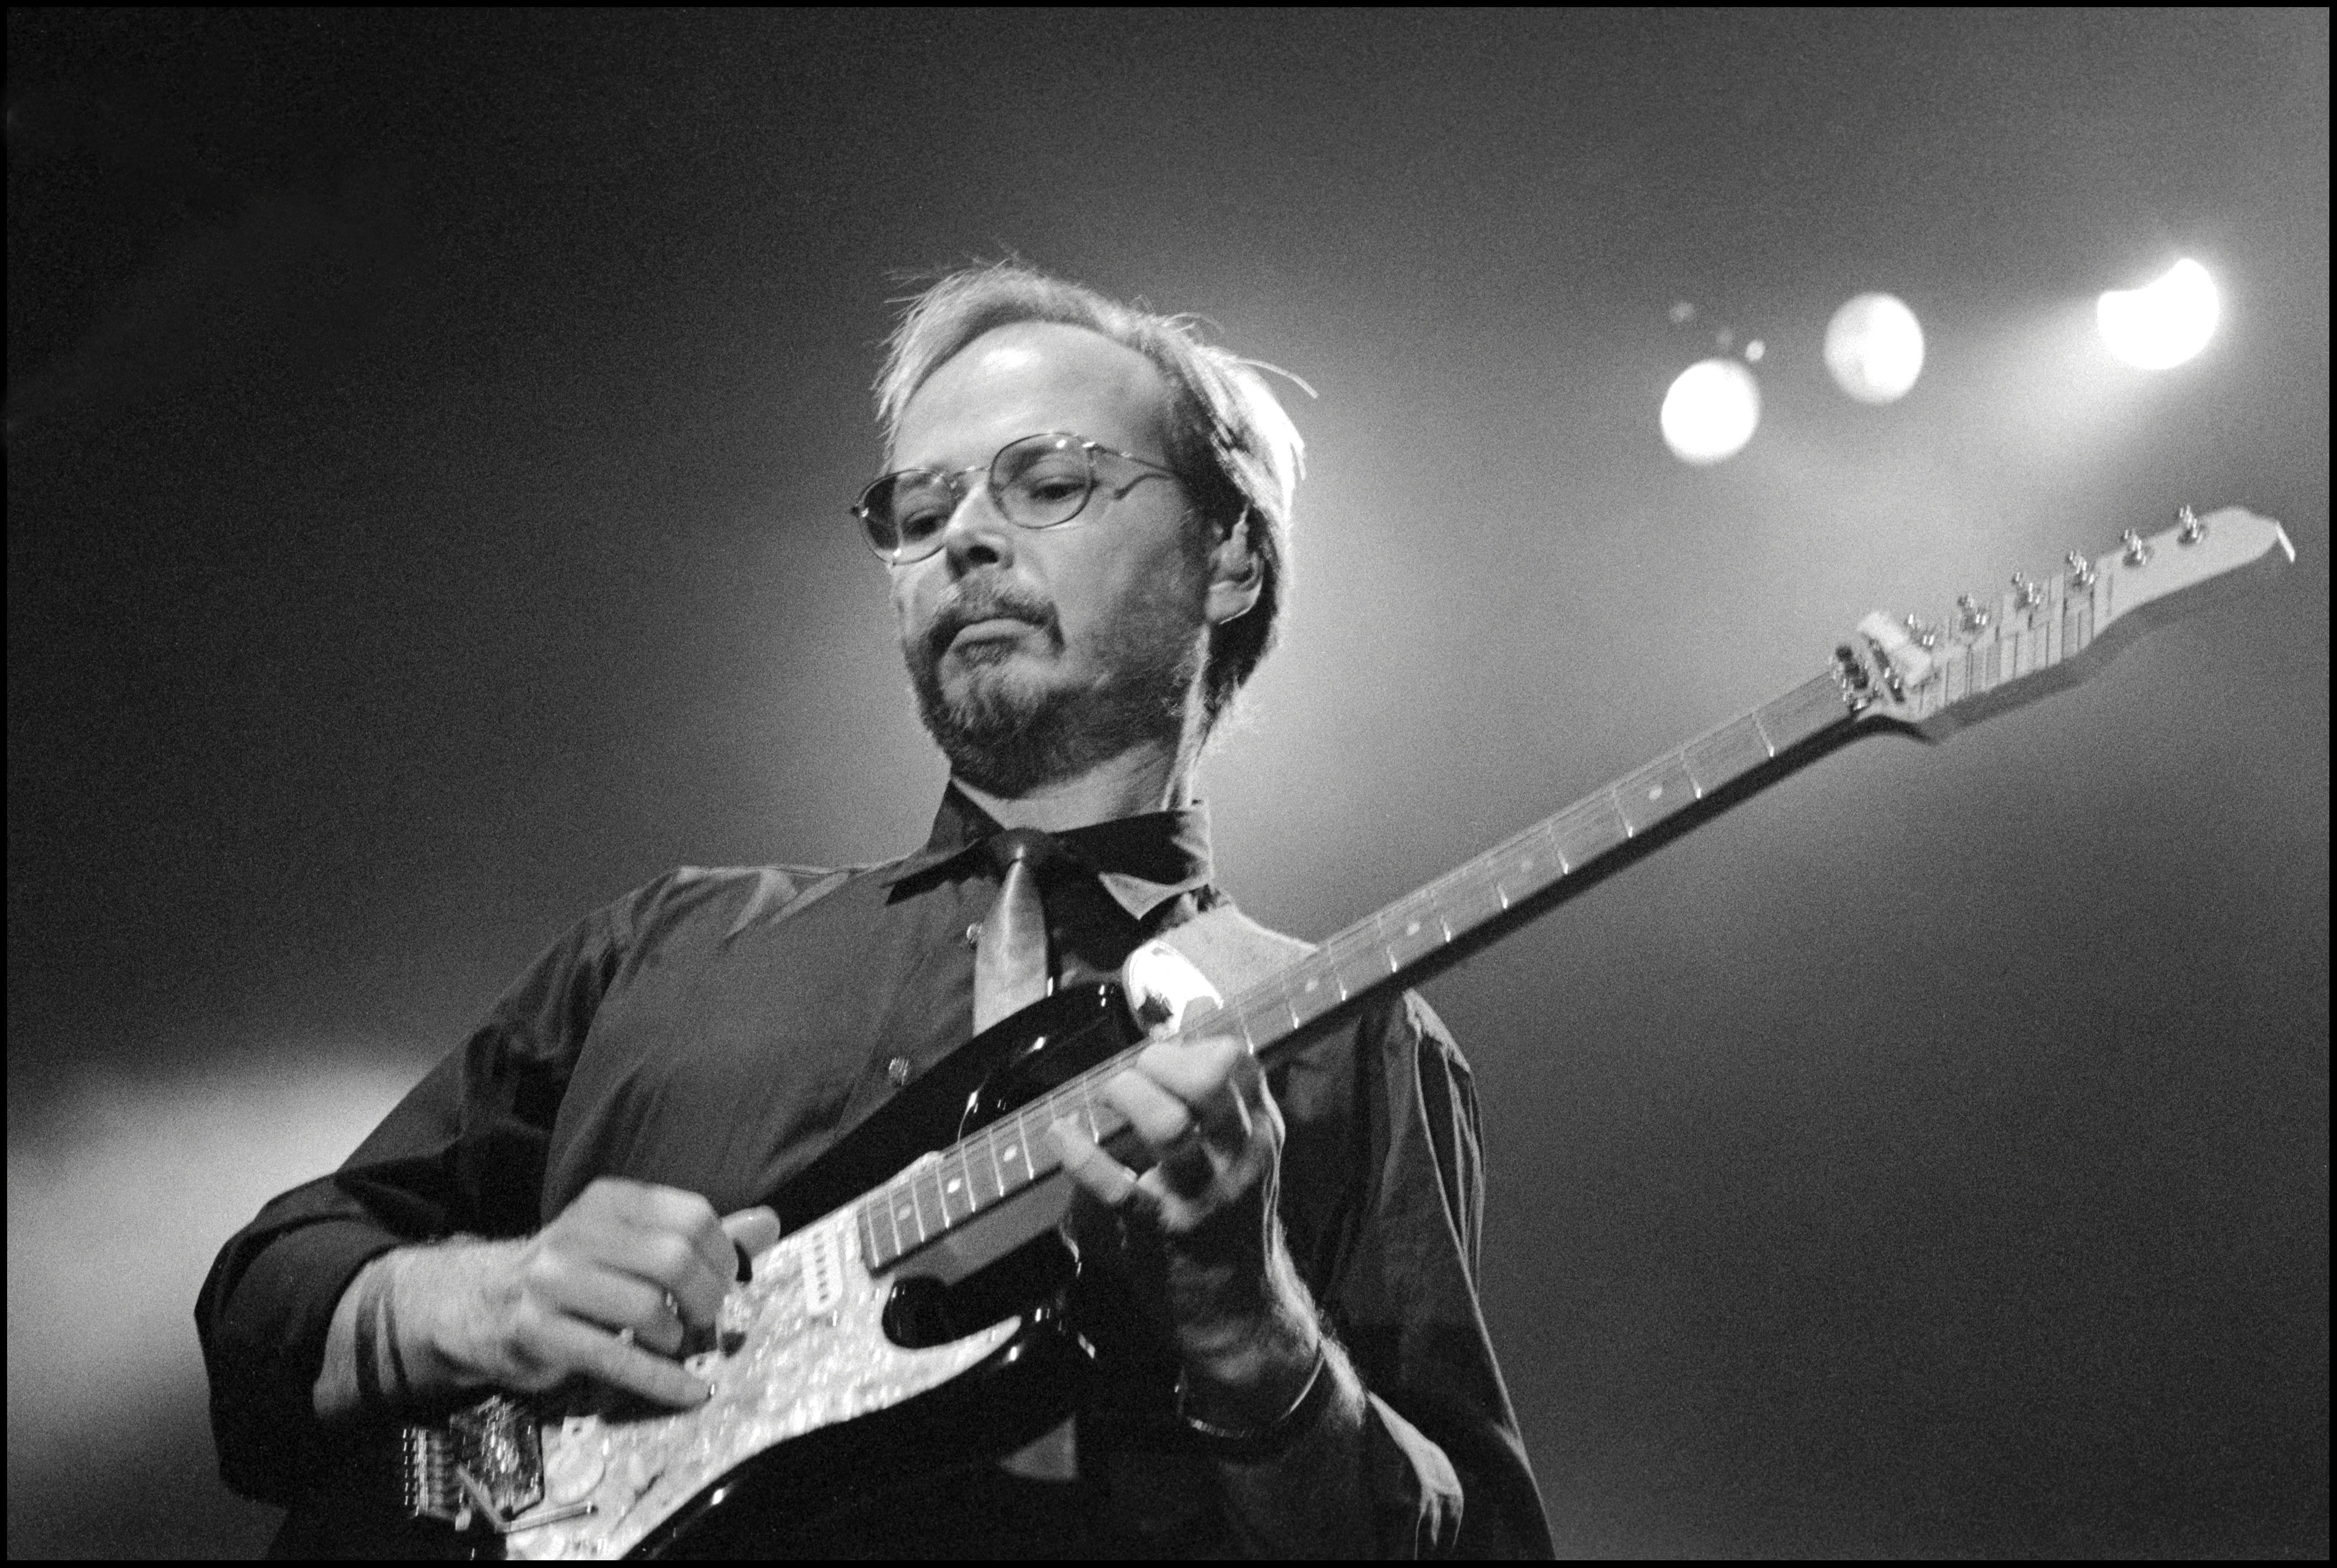 Walter Becker: Steely Dan Co-Founder's Guitars, Sound Equipment Head to Auction